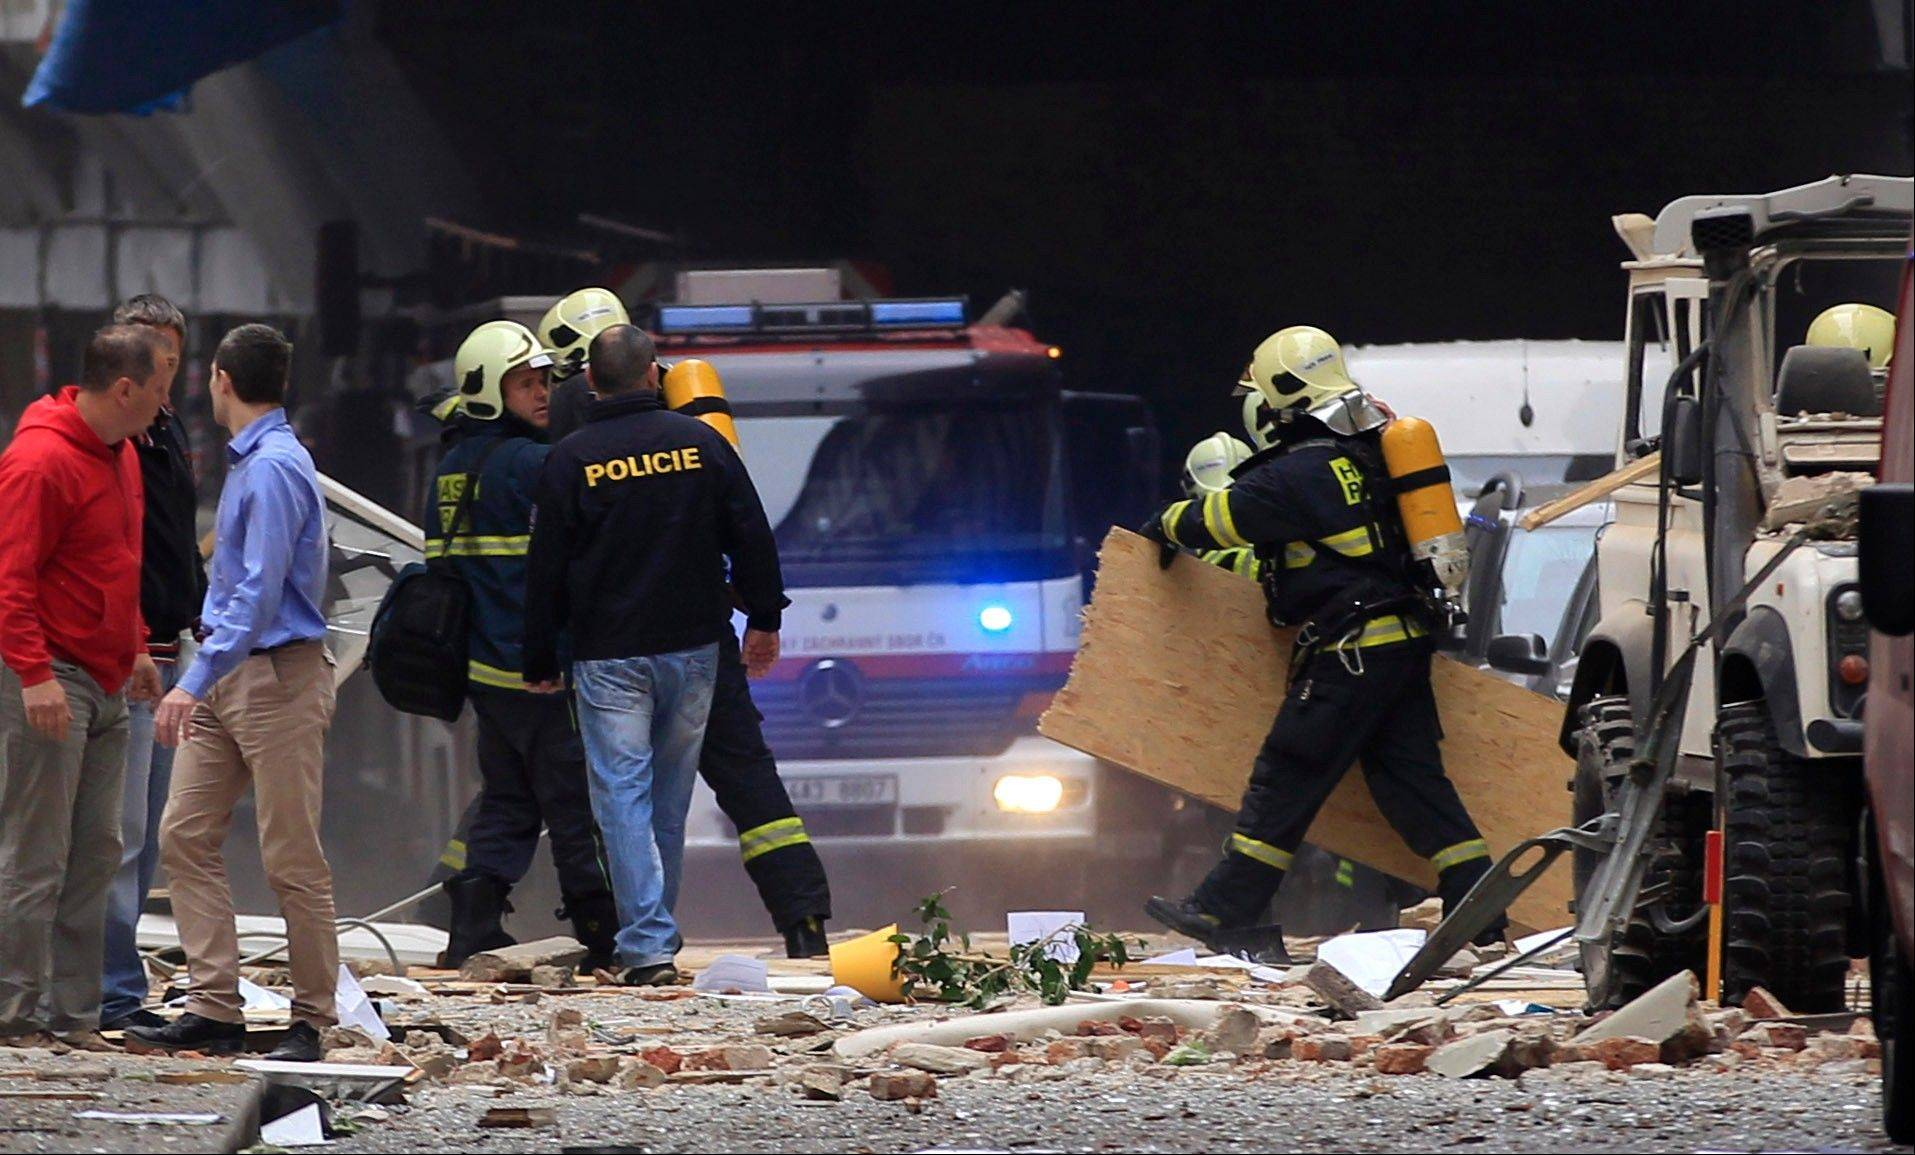 Policemen and firefighters inspect the scene of an explosion in downtown Prague, Czech Republic, Monday. Police said a powerful explosion has damaged a building in the center of the Czech capital, and they believe some people are buried in the rubble.